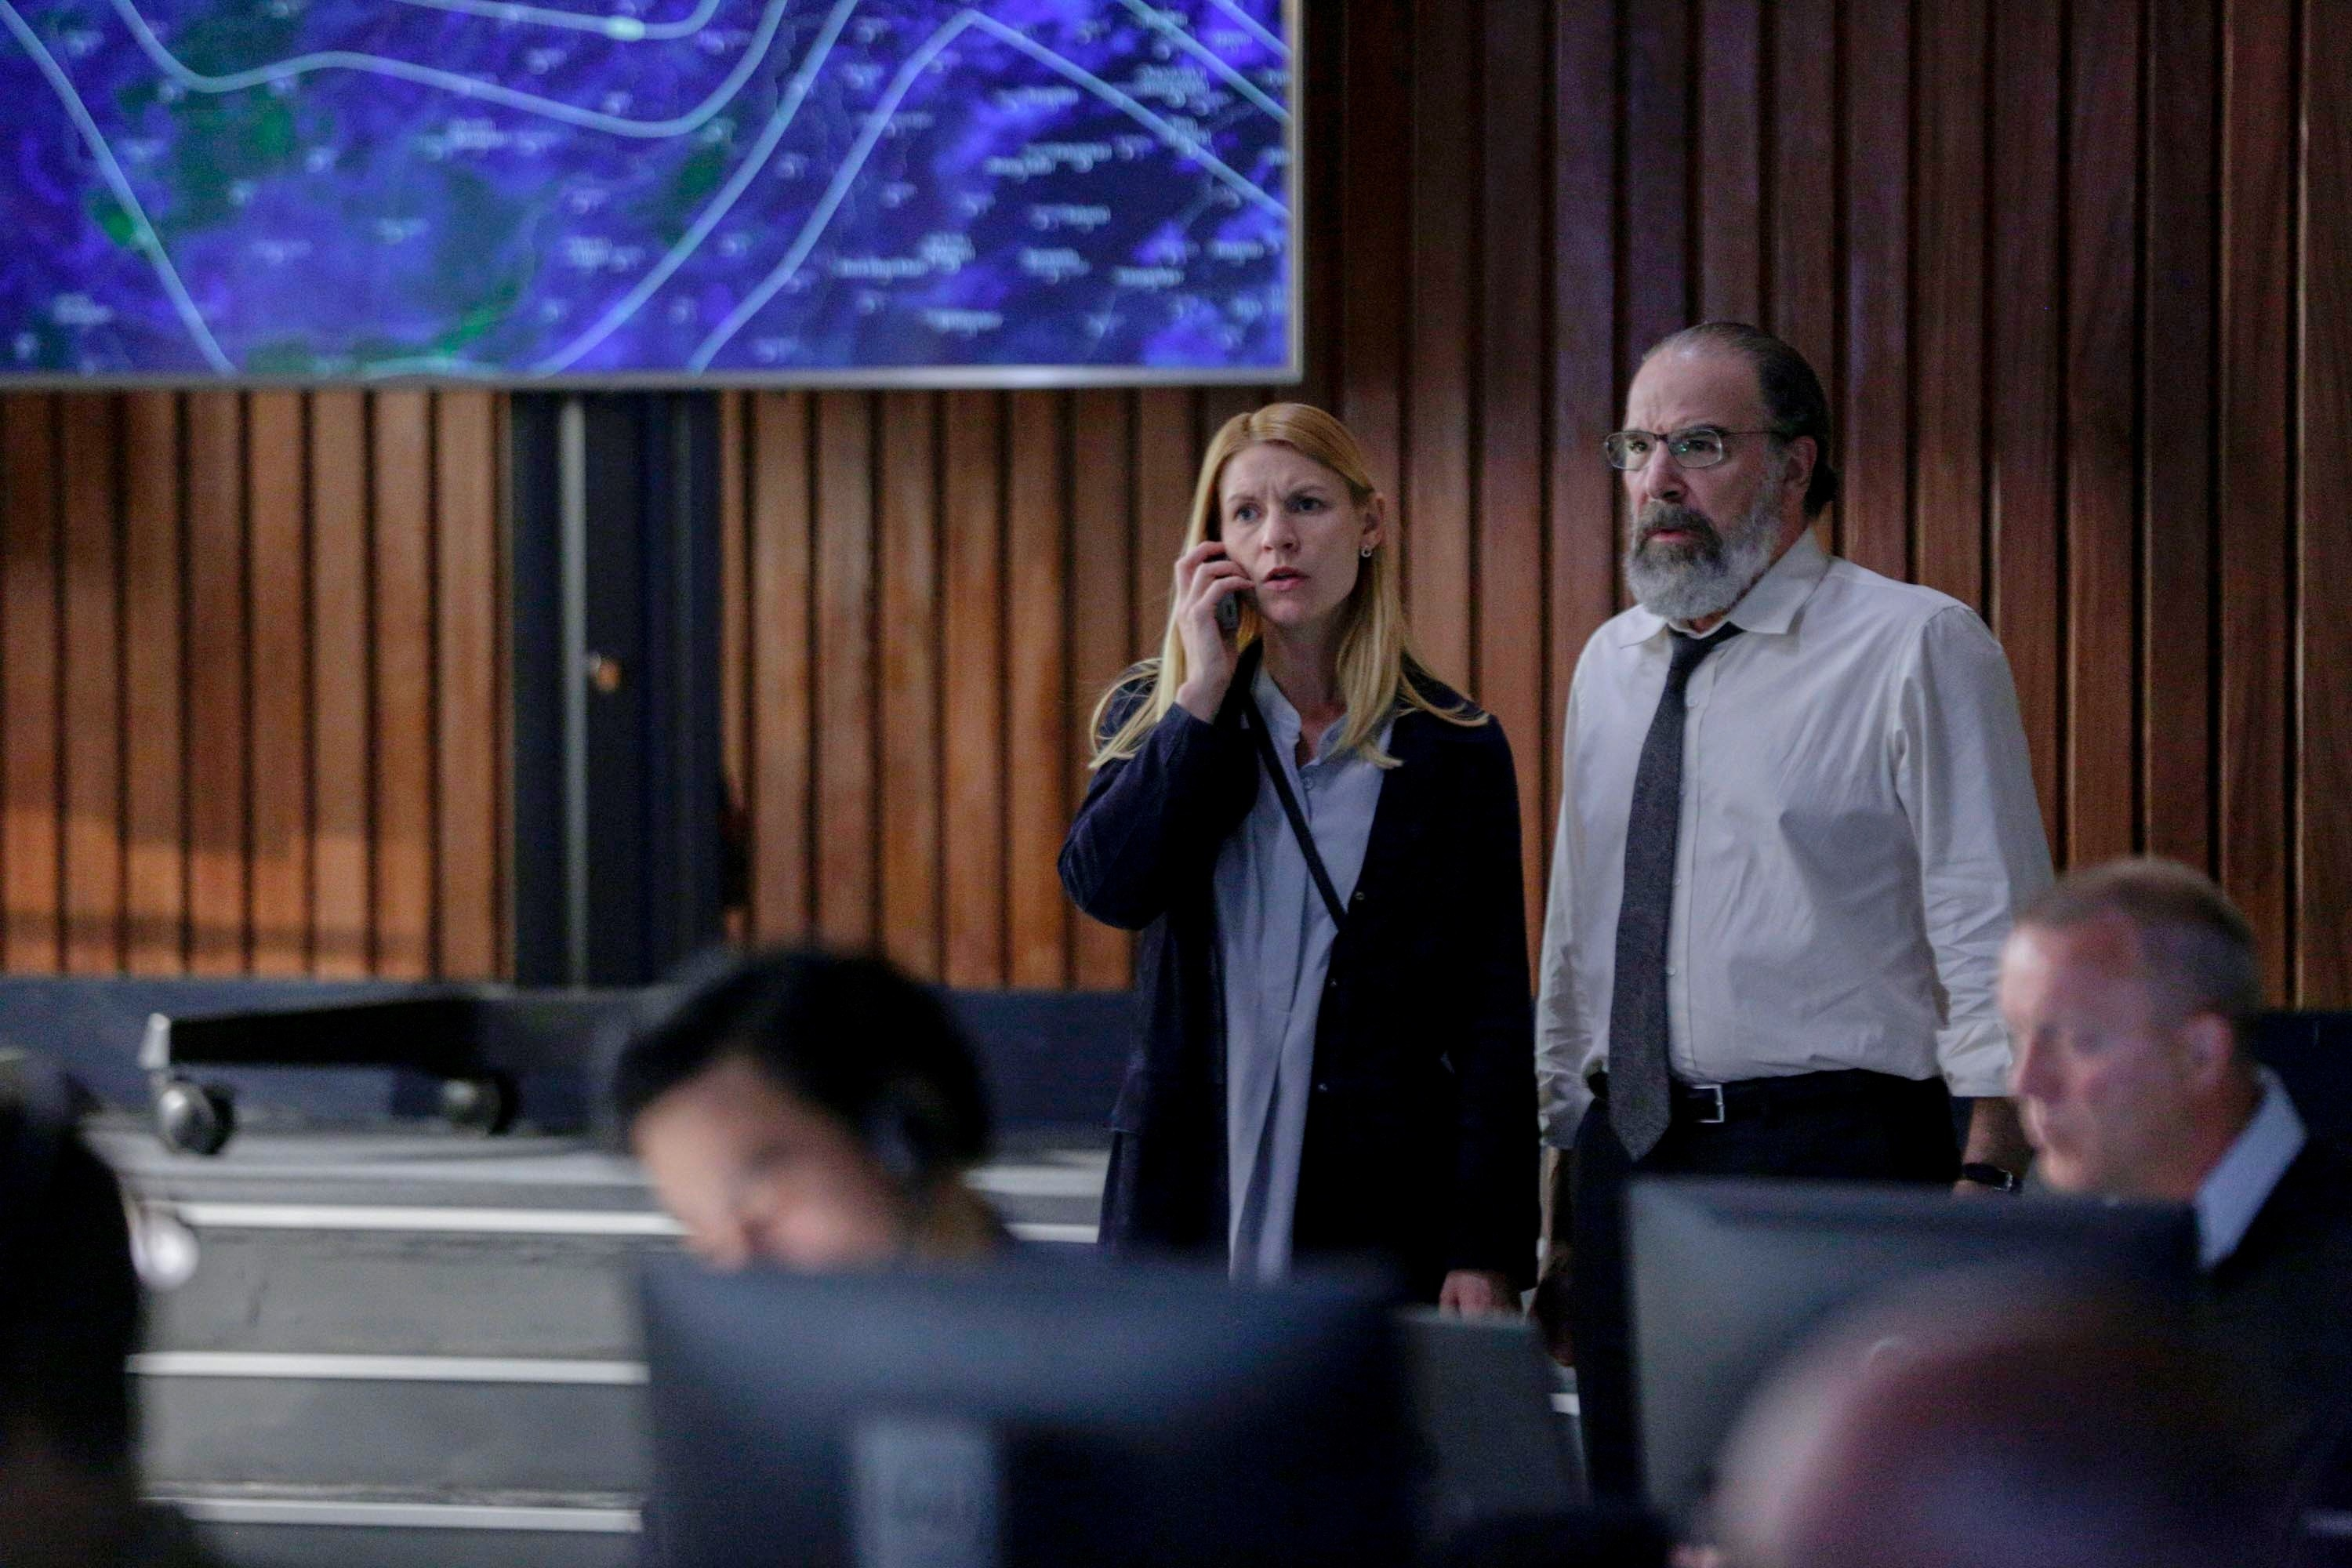 Claire Danes and Mandy Patinkin look worried in a room with computers